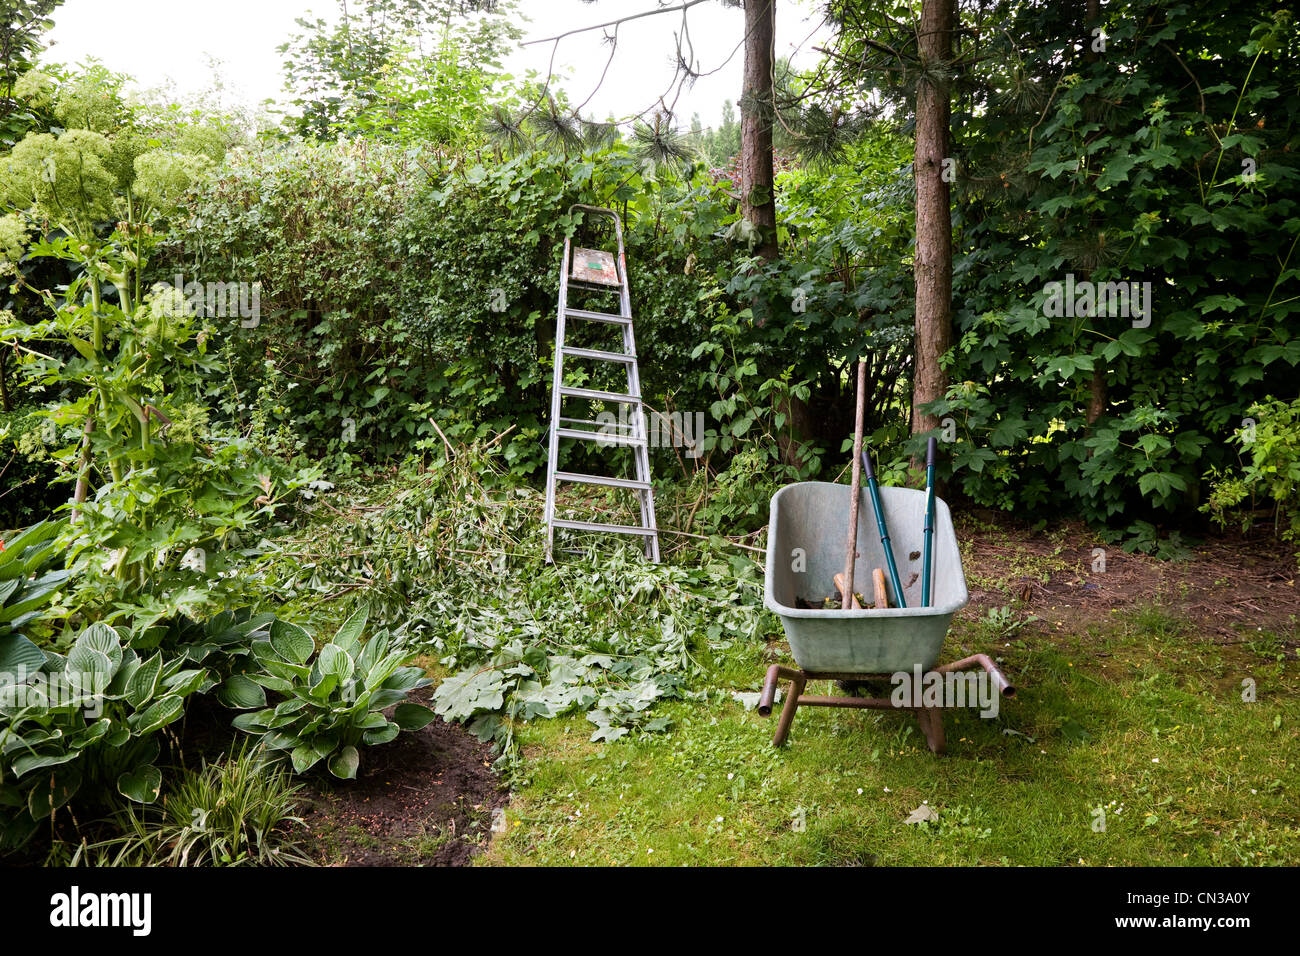 landscape gardening stockfotos landscape gardening bilder alamy. Black Bedroom Furniture Sets. Home Design Ideas